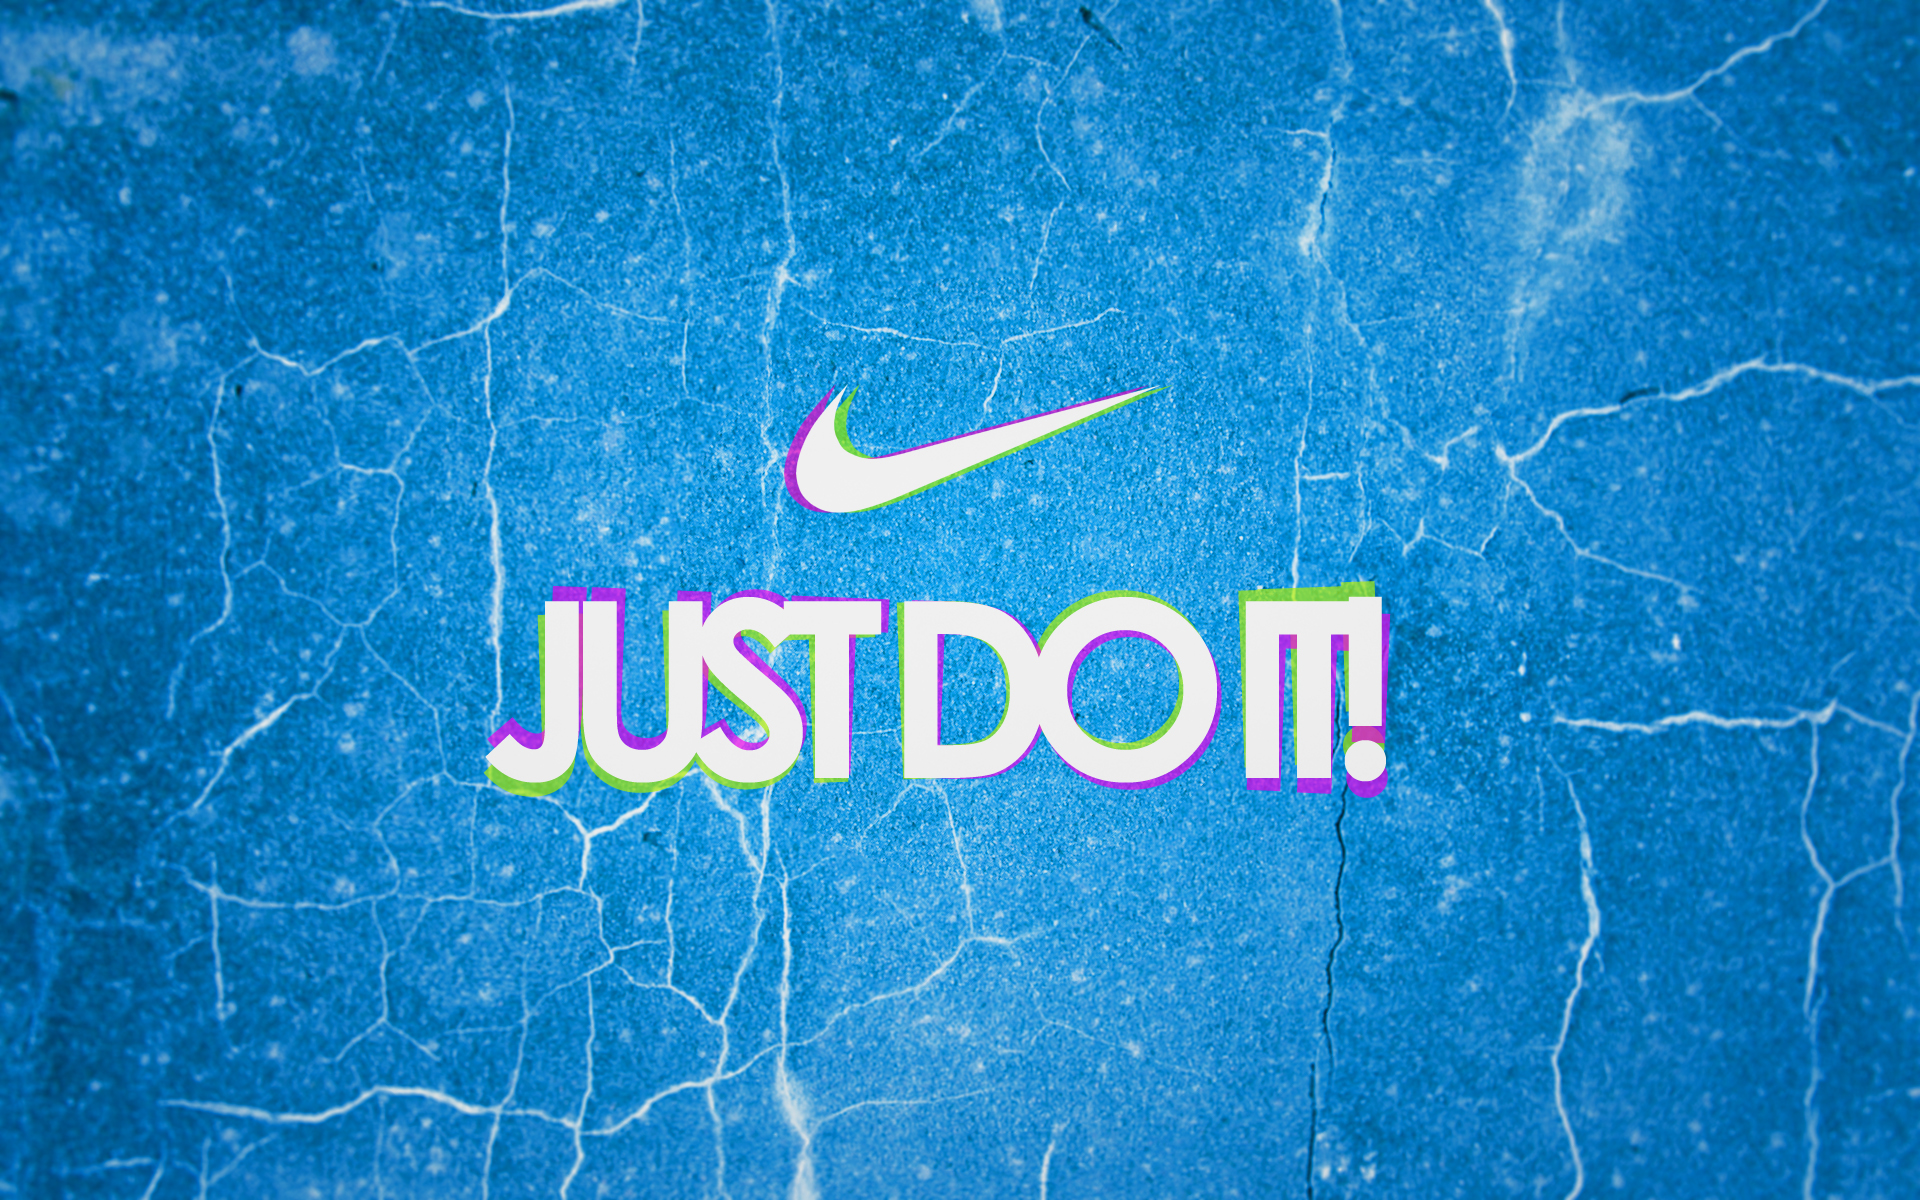 Image for nike just do it wallpaper